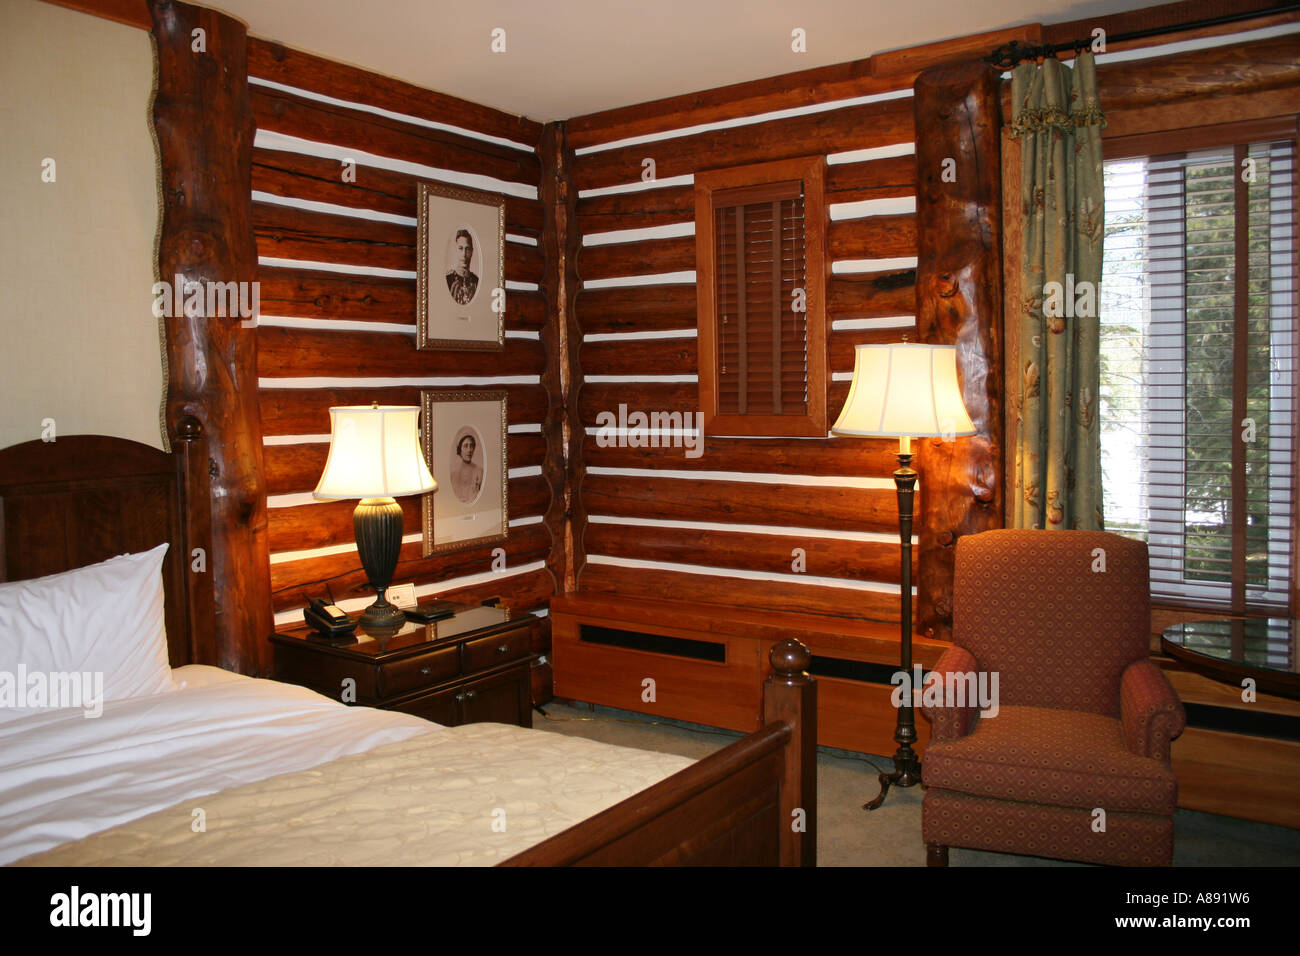 Royal bedroom stock photos royal bedroom stock images for Decore hotel jasper